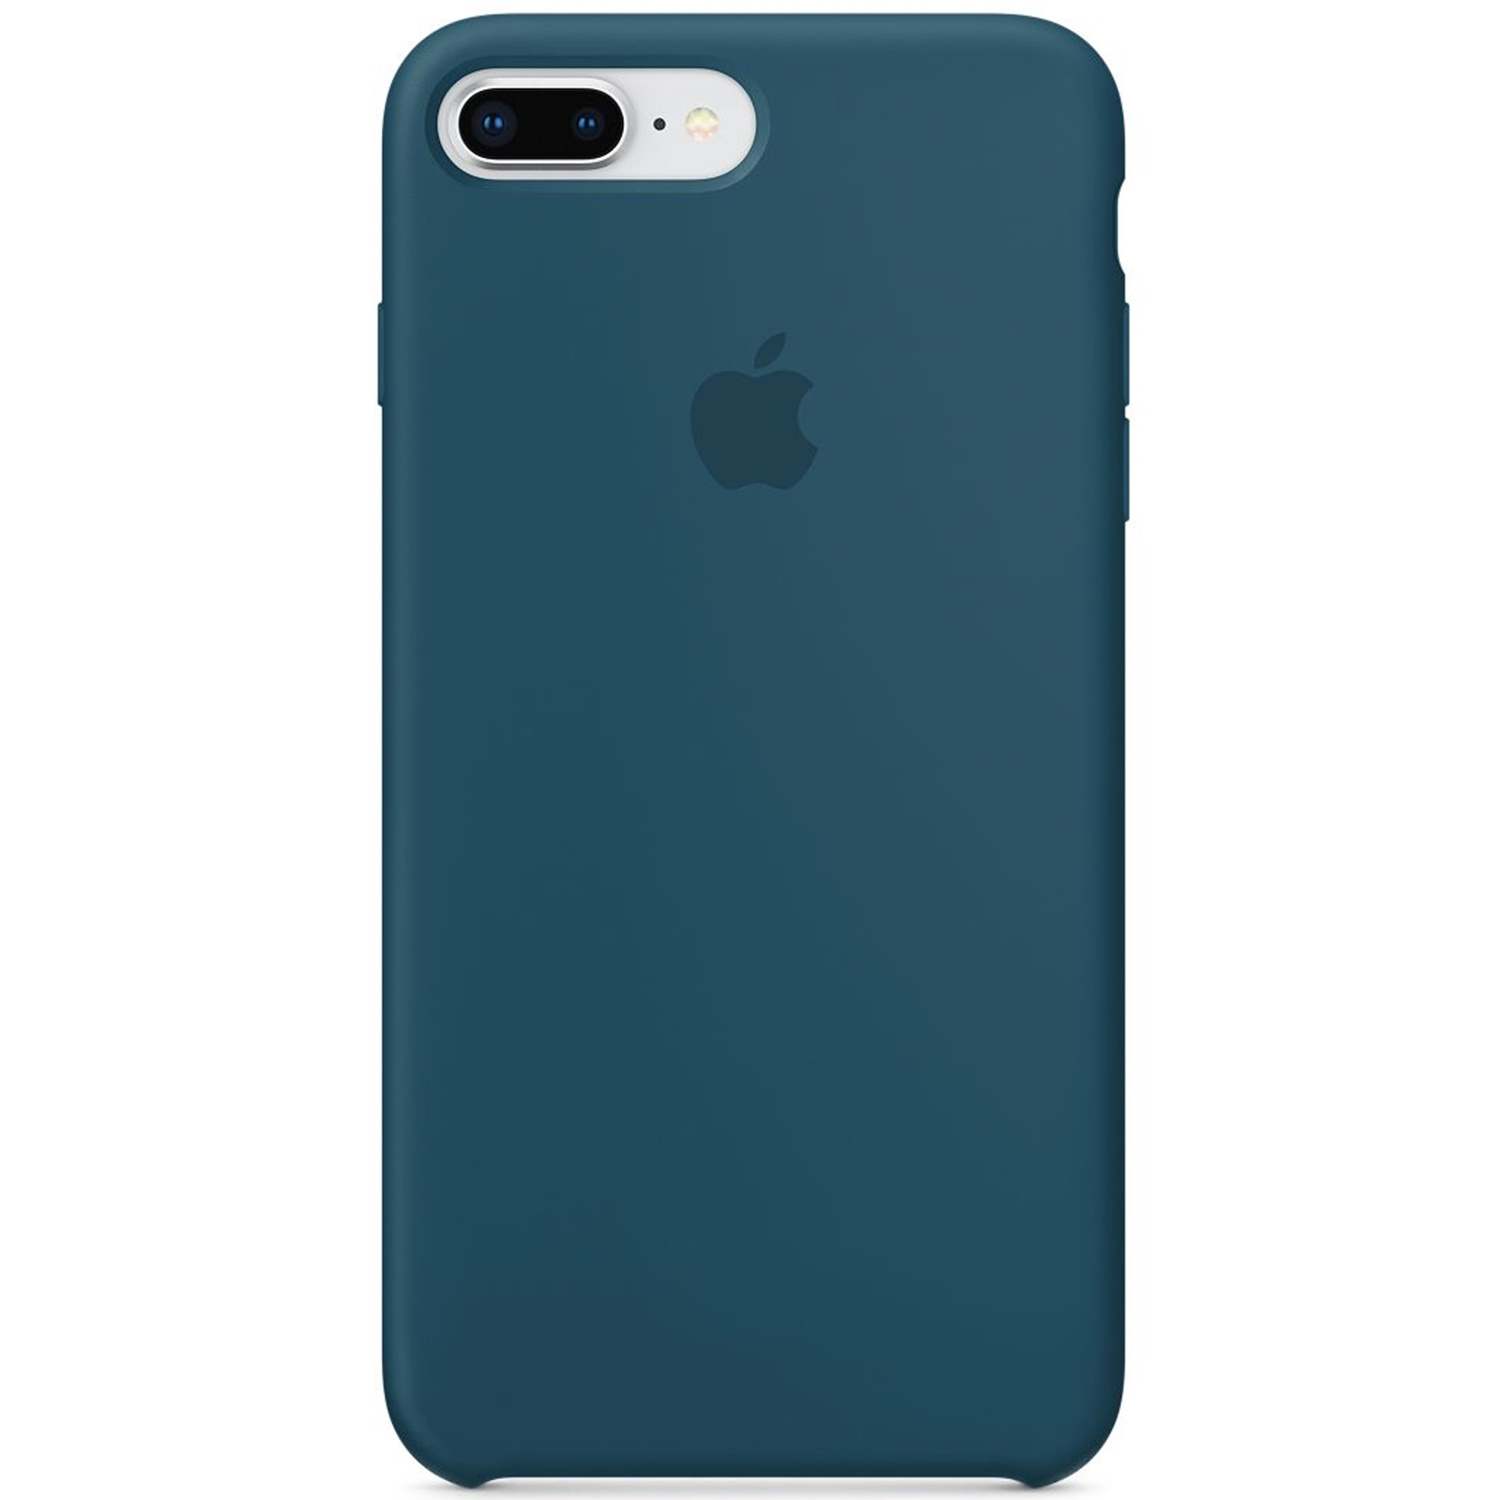 Silicone Backcover iPhone 8 Plus / 7 Plus - Cosmos Blue